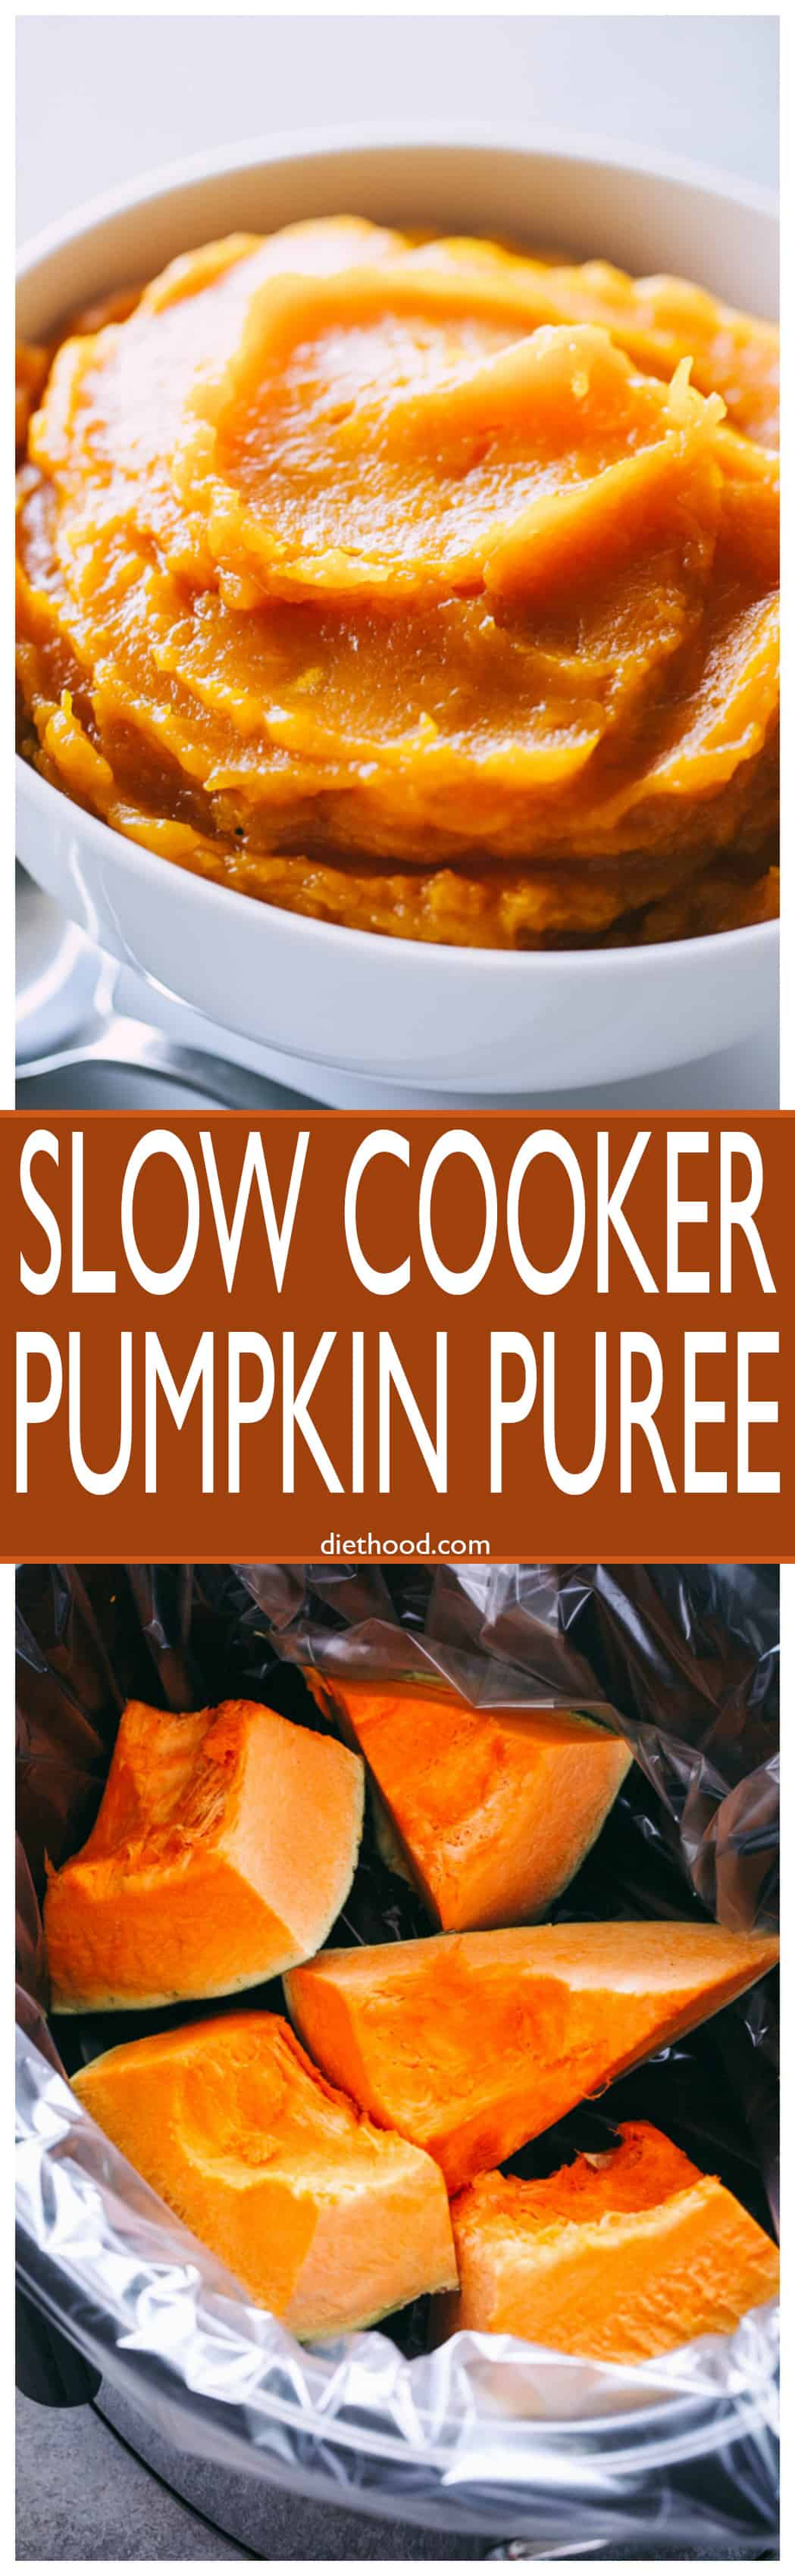 Slow Cooker Pumpkin Puree - Super easy way to prepare homemade and delicious #slowcooker #pumpkin puree, and it's so so so much better than store-bought!